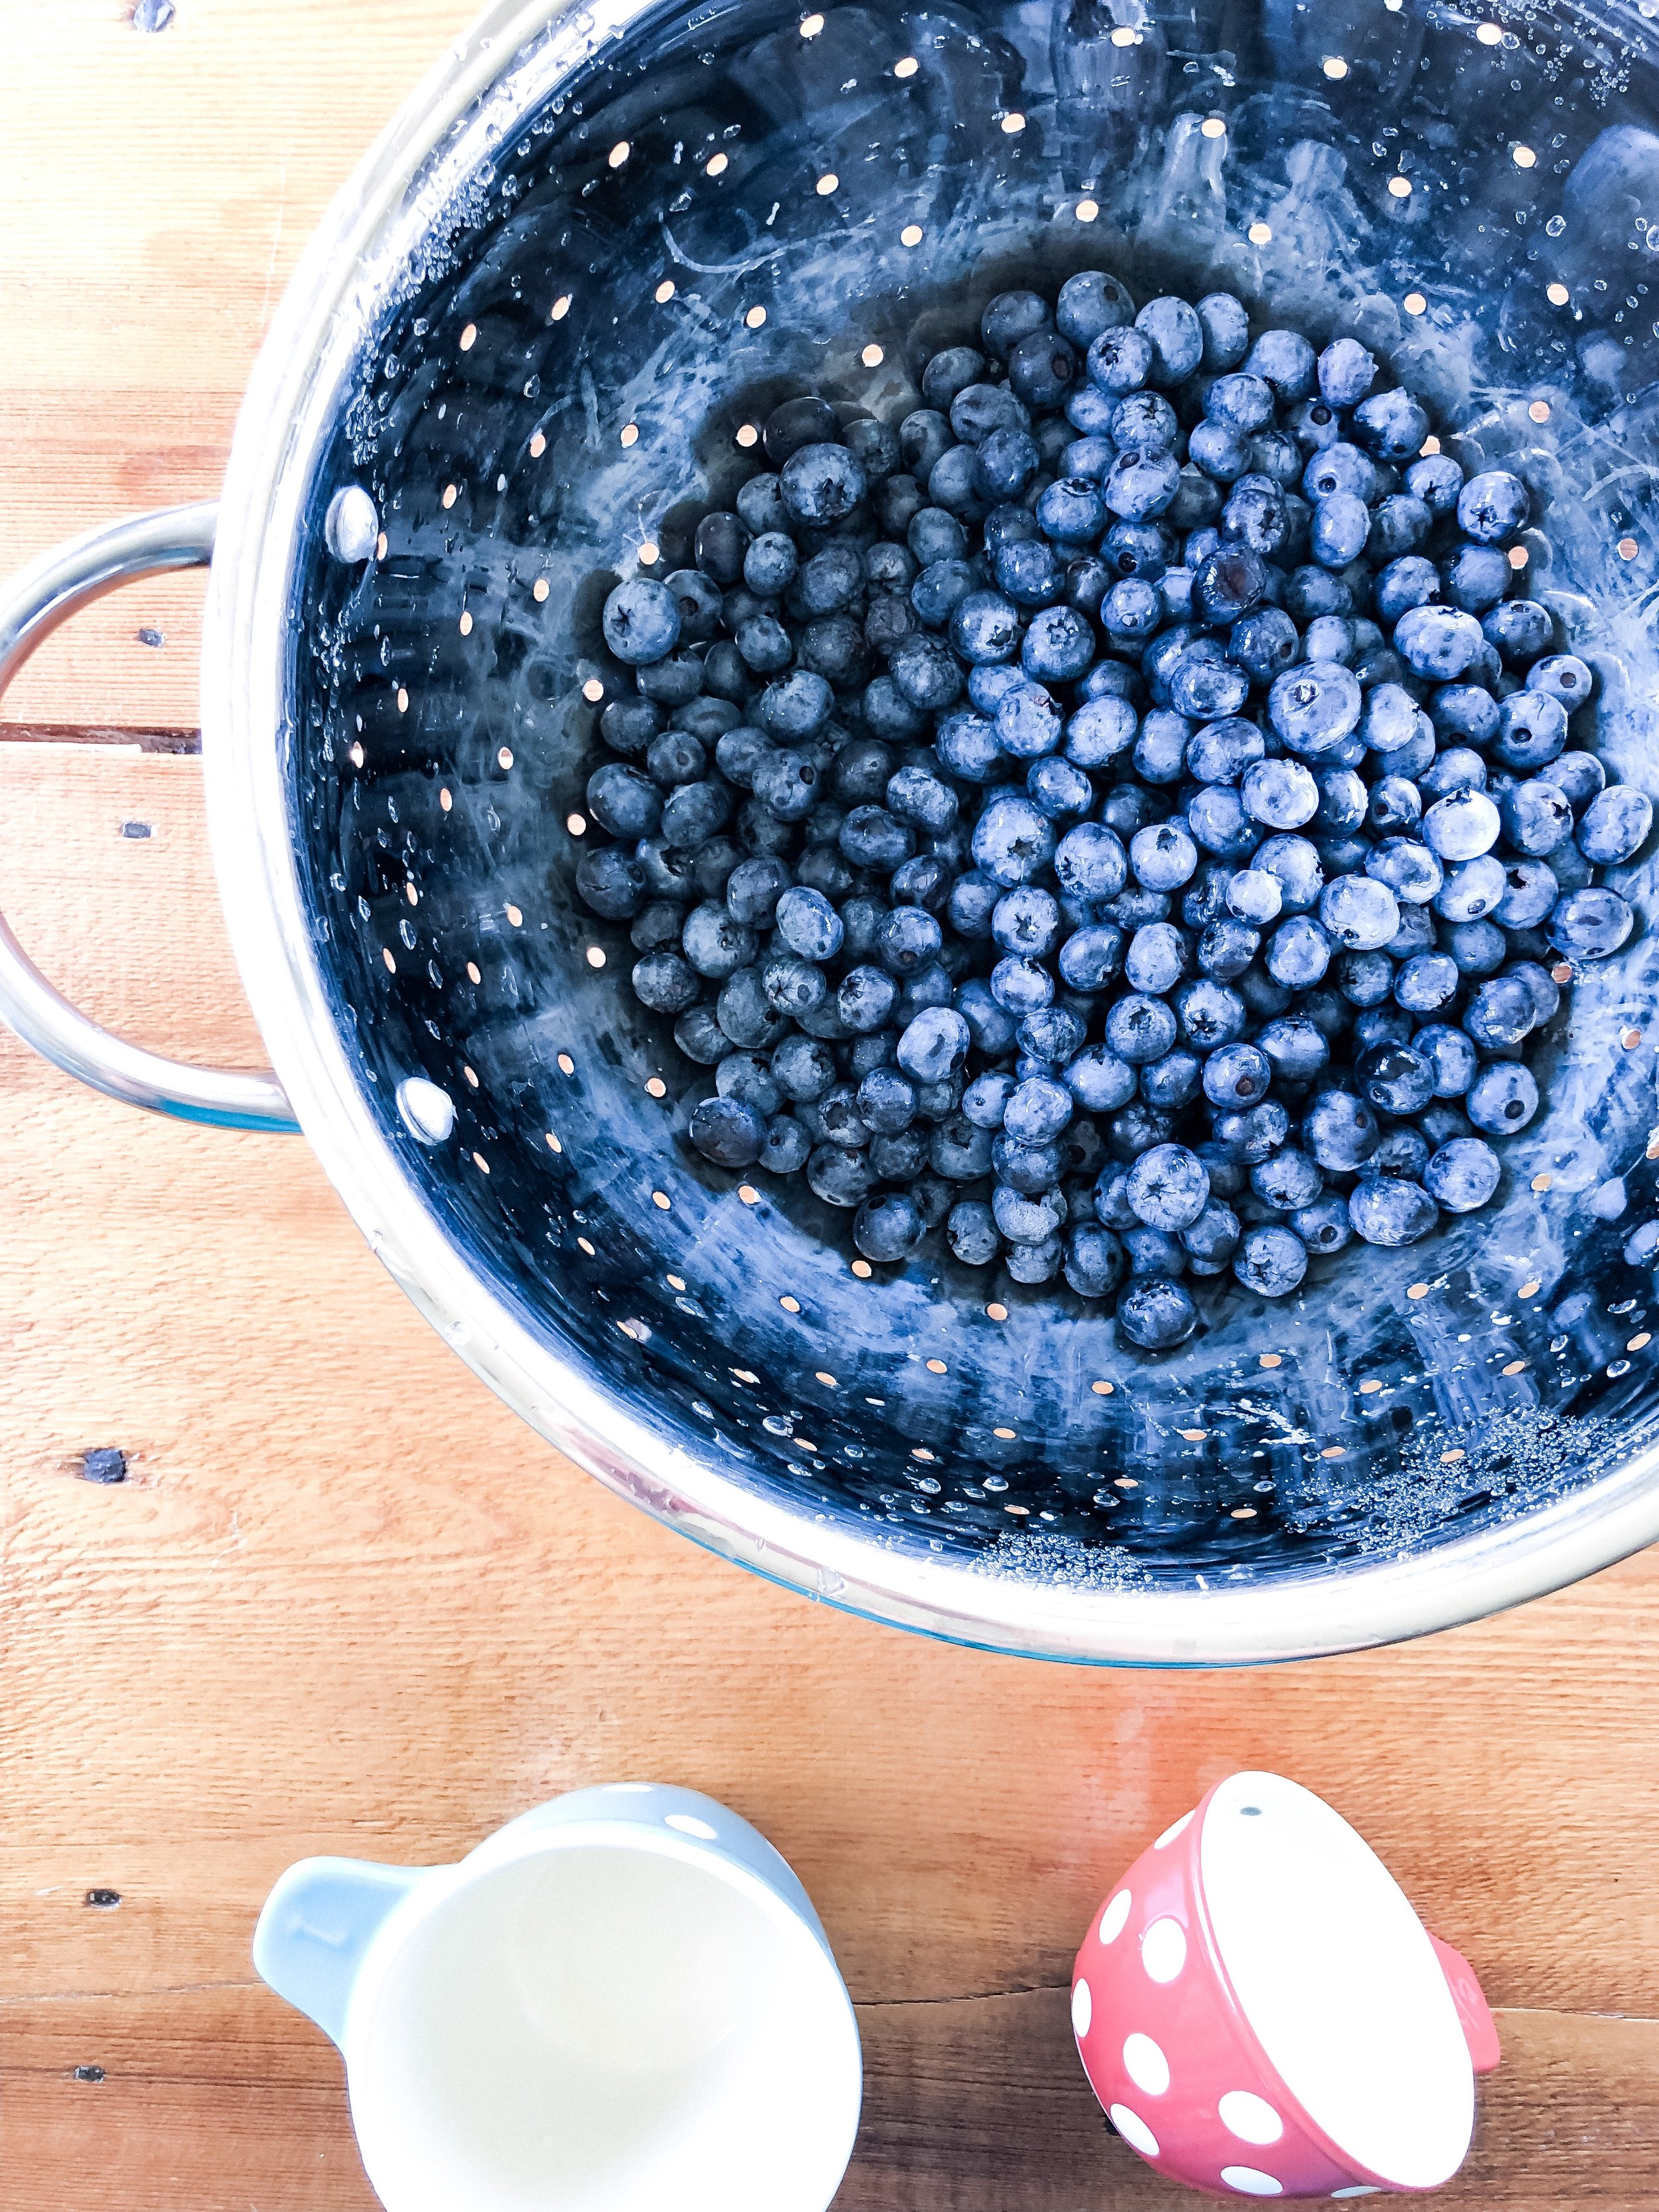 Blueberry Crisp Recipe by H. Prall & Co. | H. Prall & Co. Interior Decorating